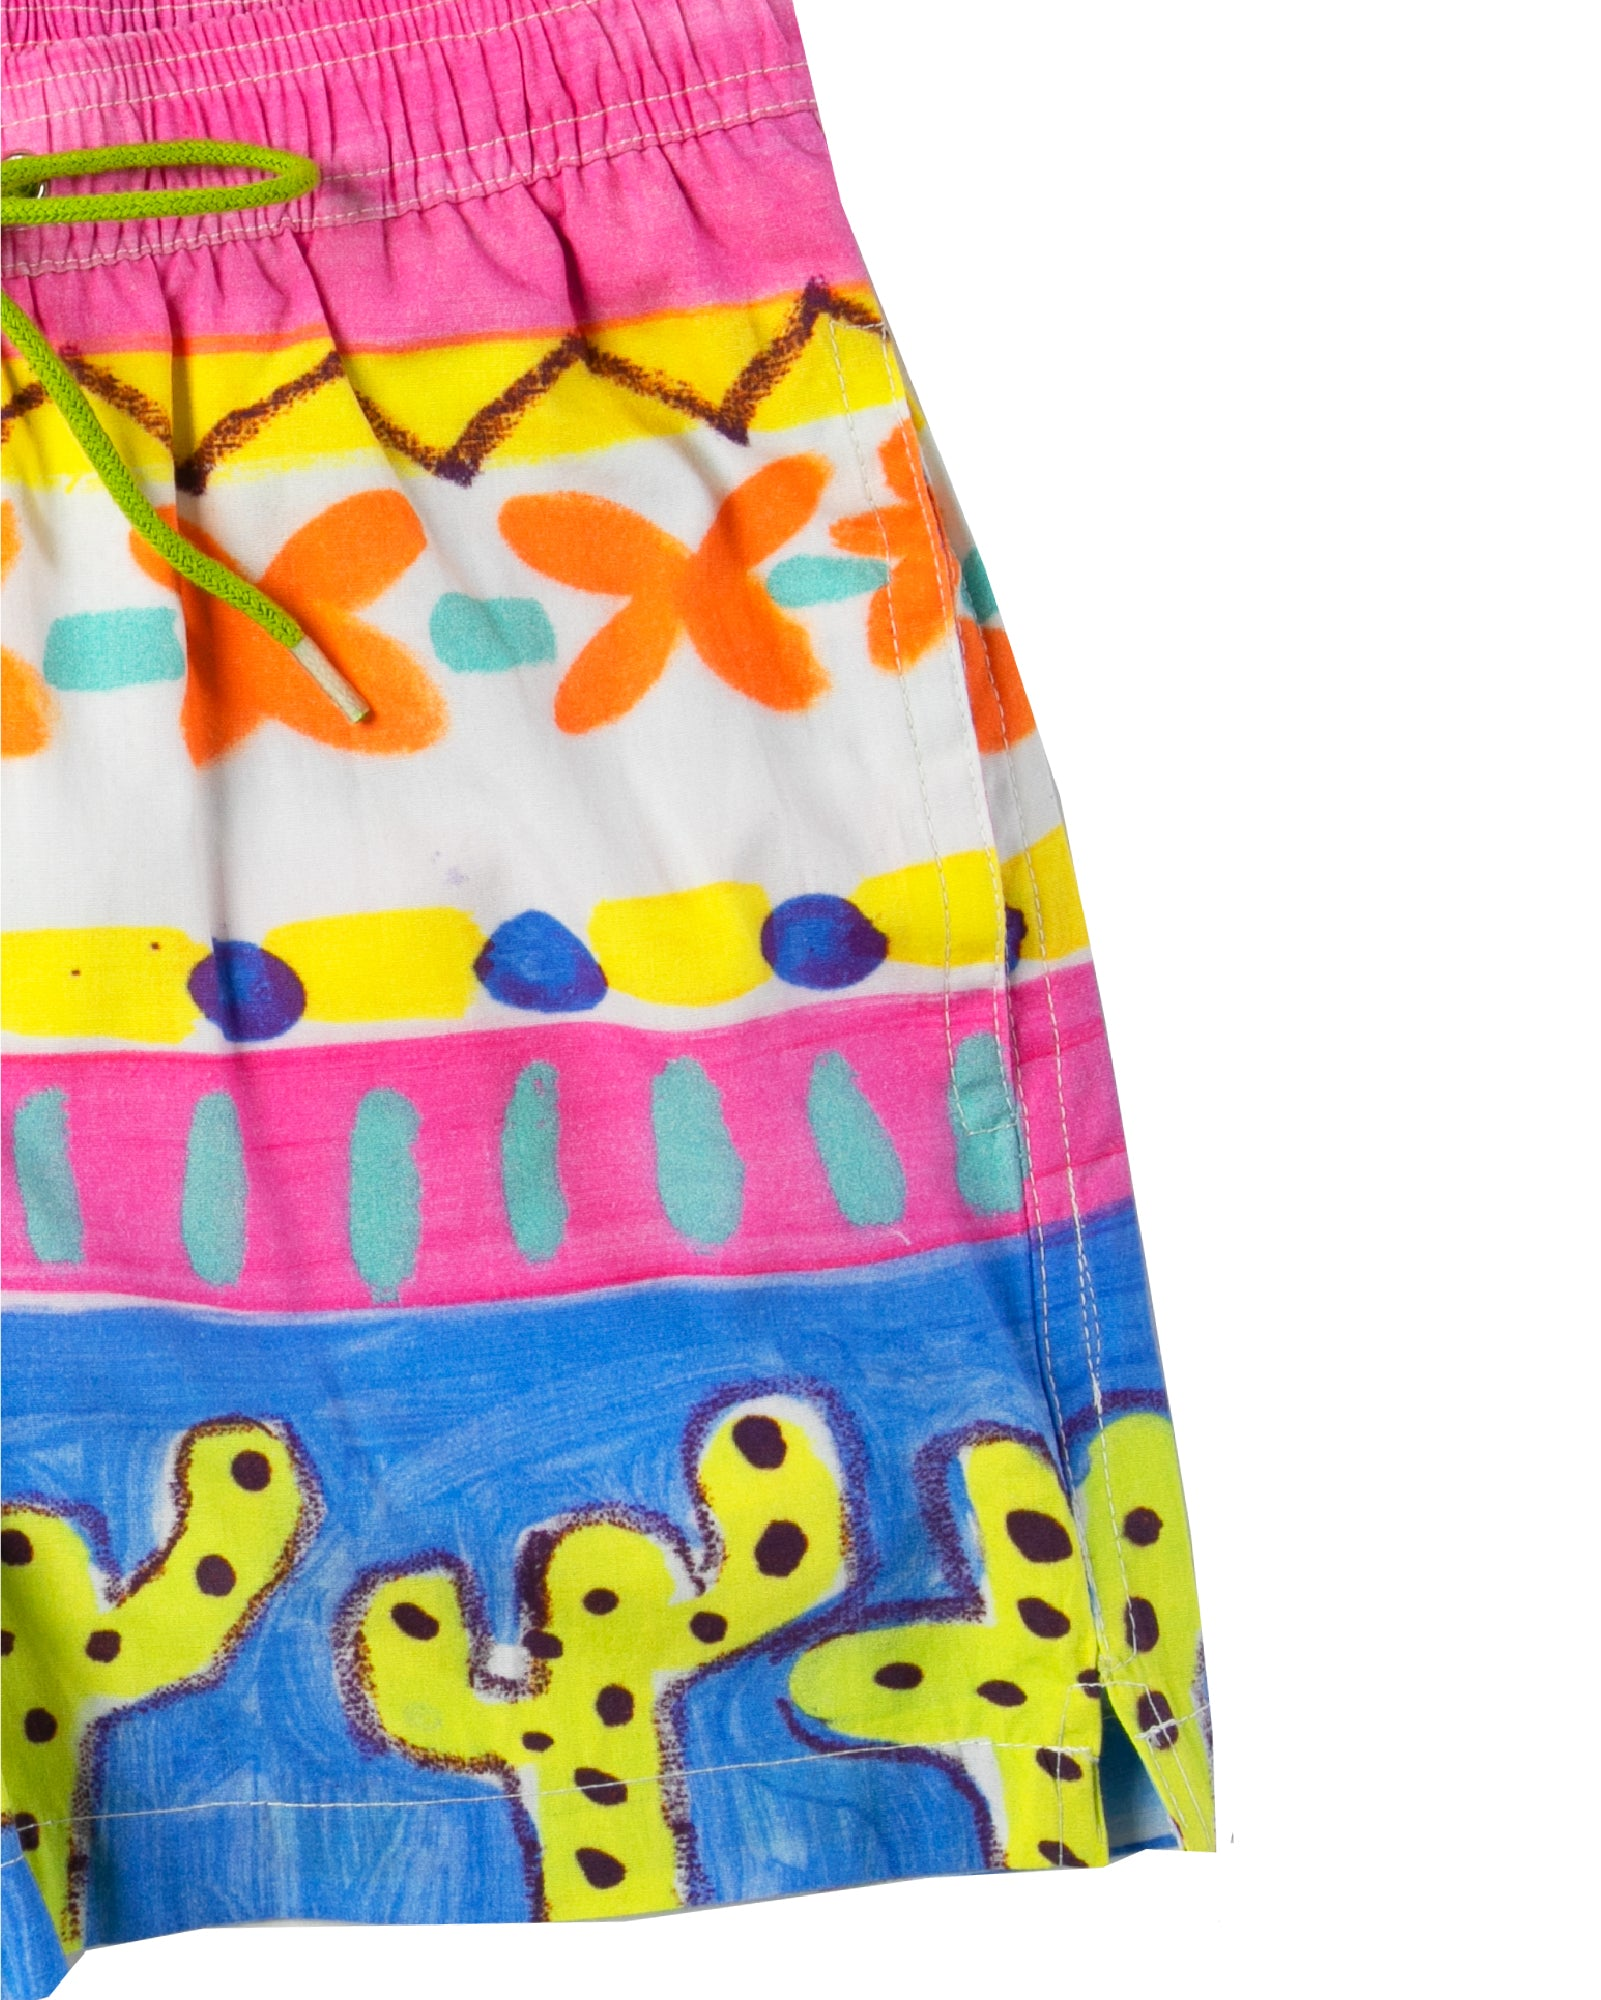 The Desert Cactus Boys Boardshorts by Bonita Bambino - DETAIL